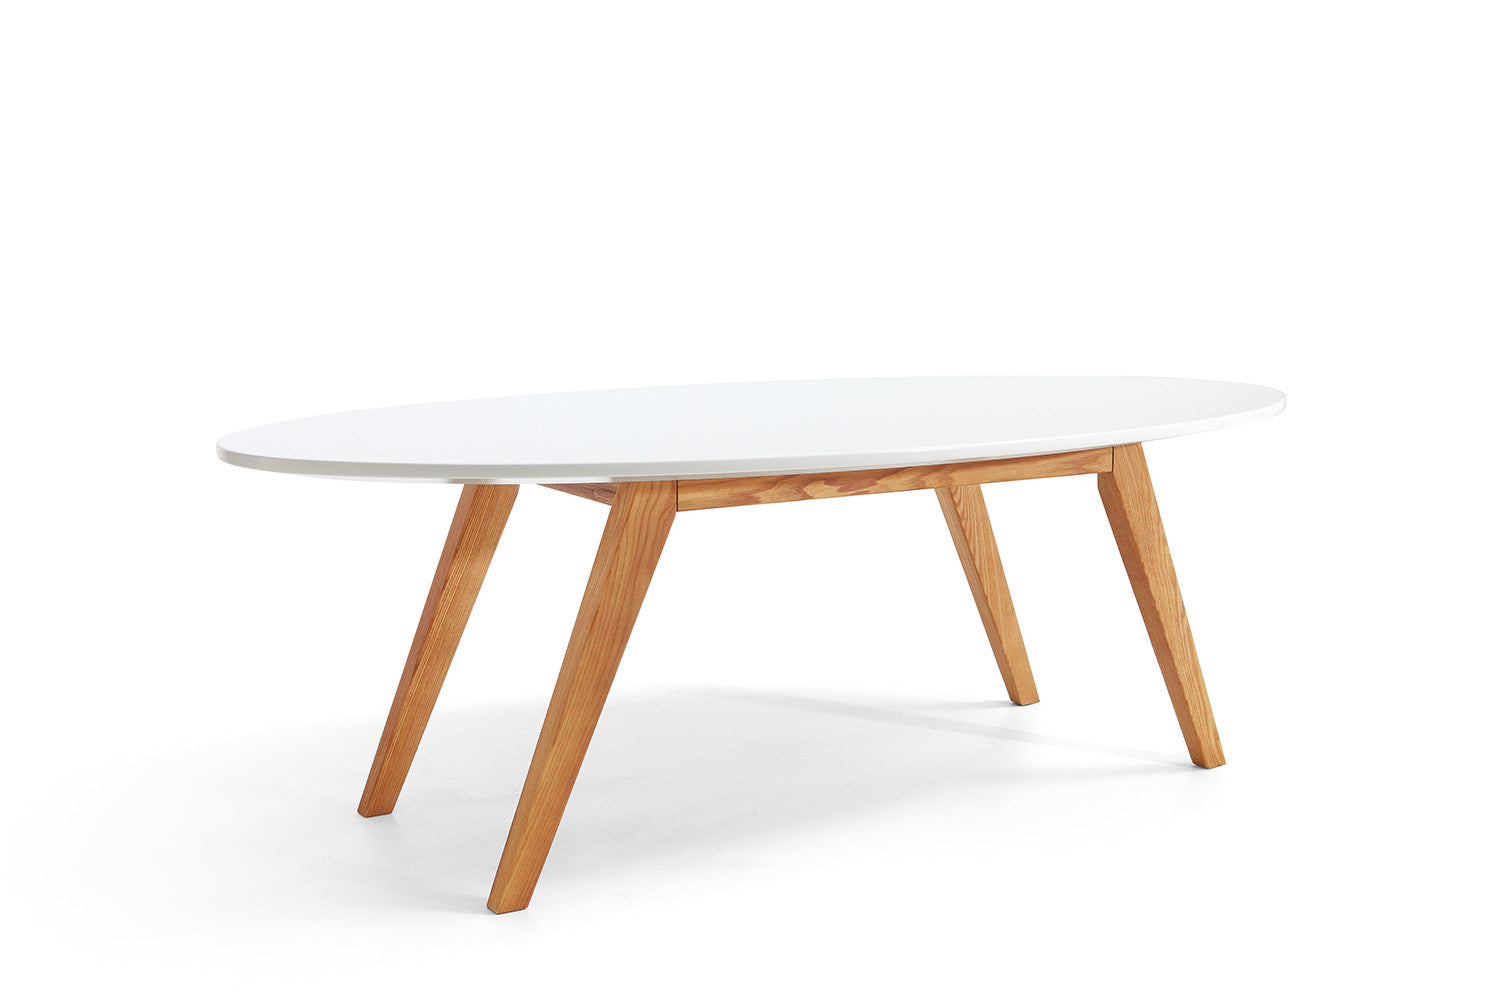 Table basse design en bois blanche b le dewarens for Table basse blanche en bois